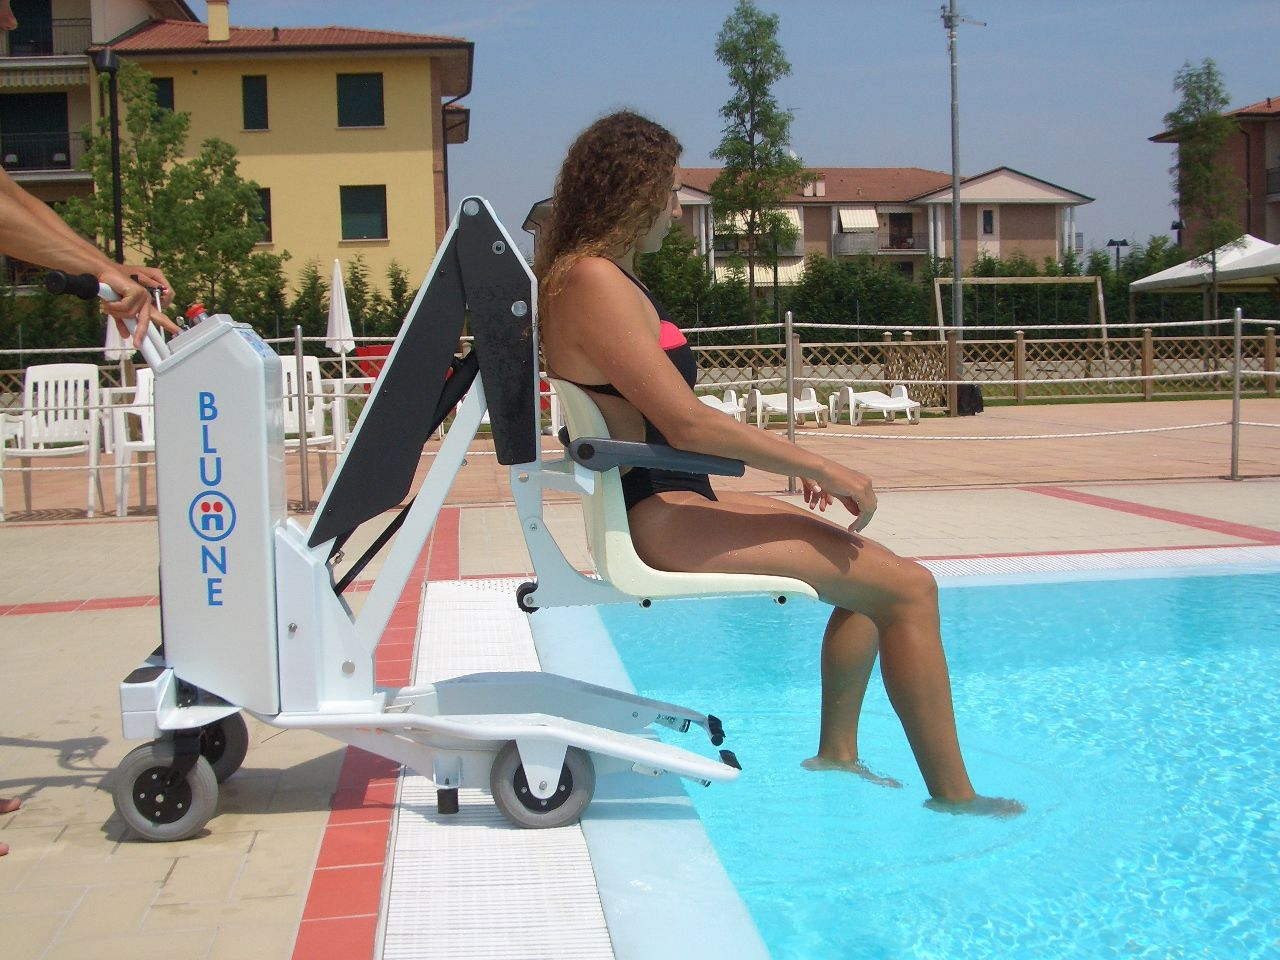 Mobility Products For The Disabled Bluone Pool Lift Pool Pinterest Swimming Pools And